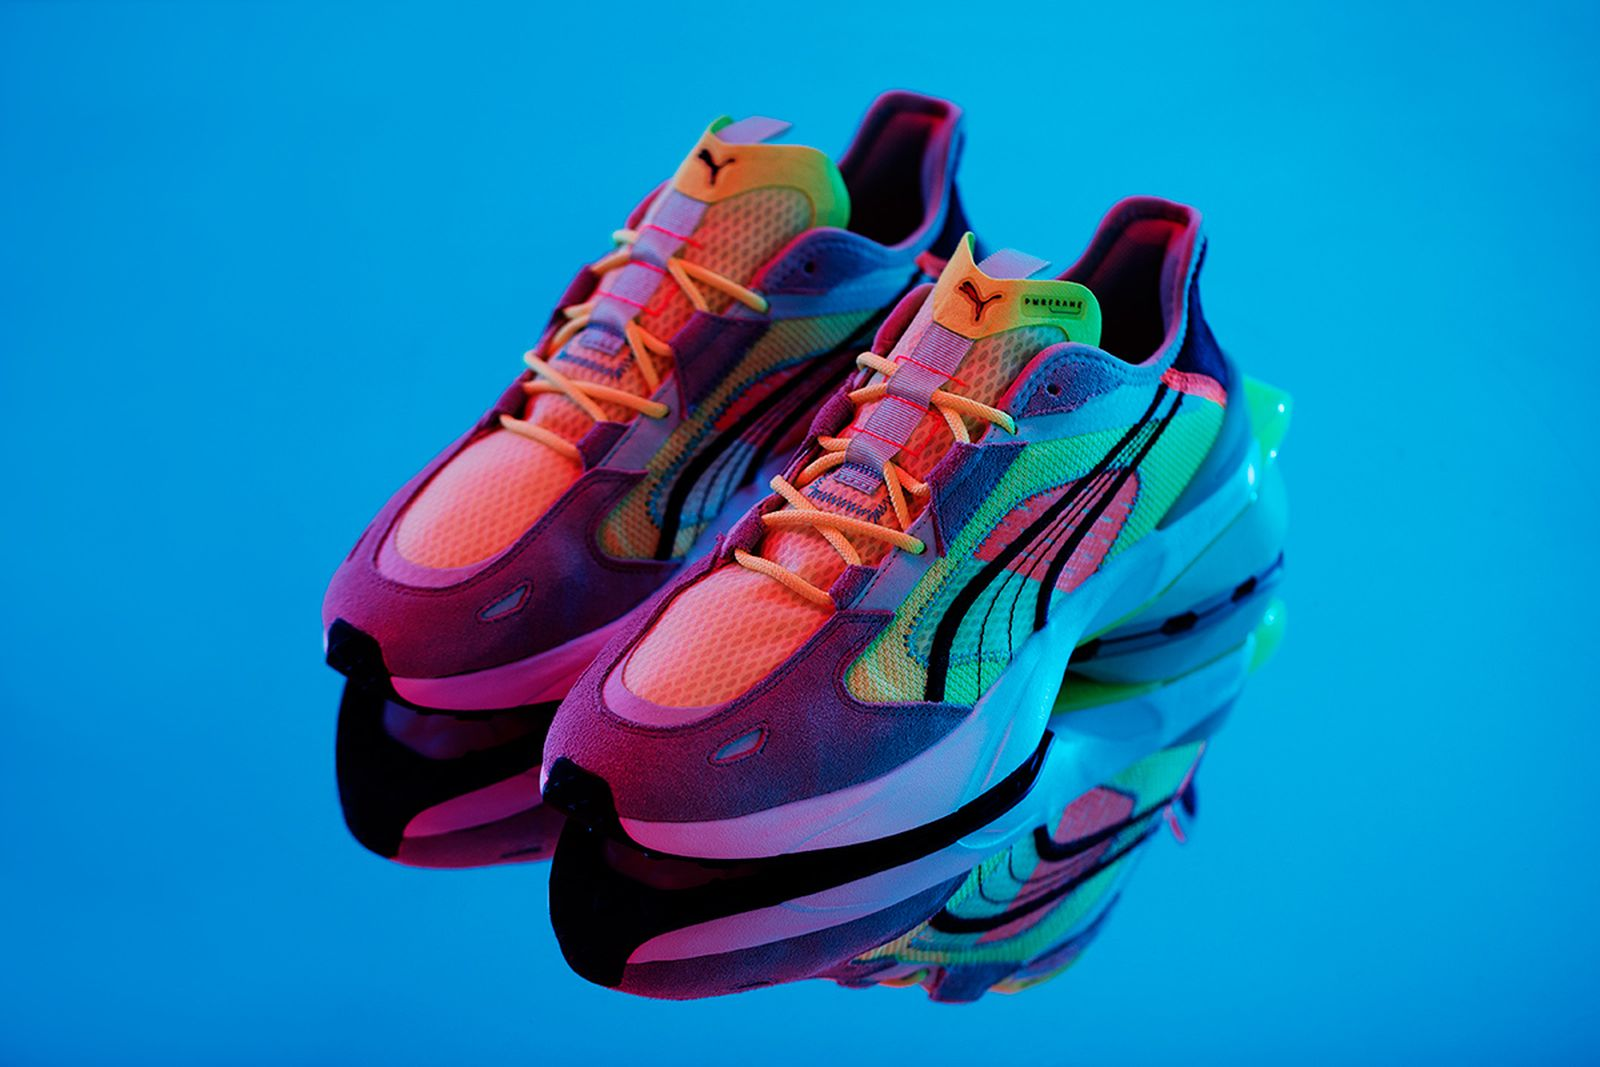 puma-op-1-pwrframe-abstract-release-date-price-01